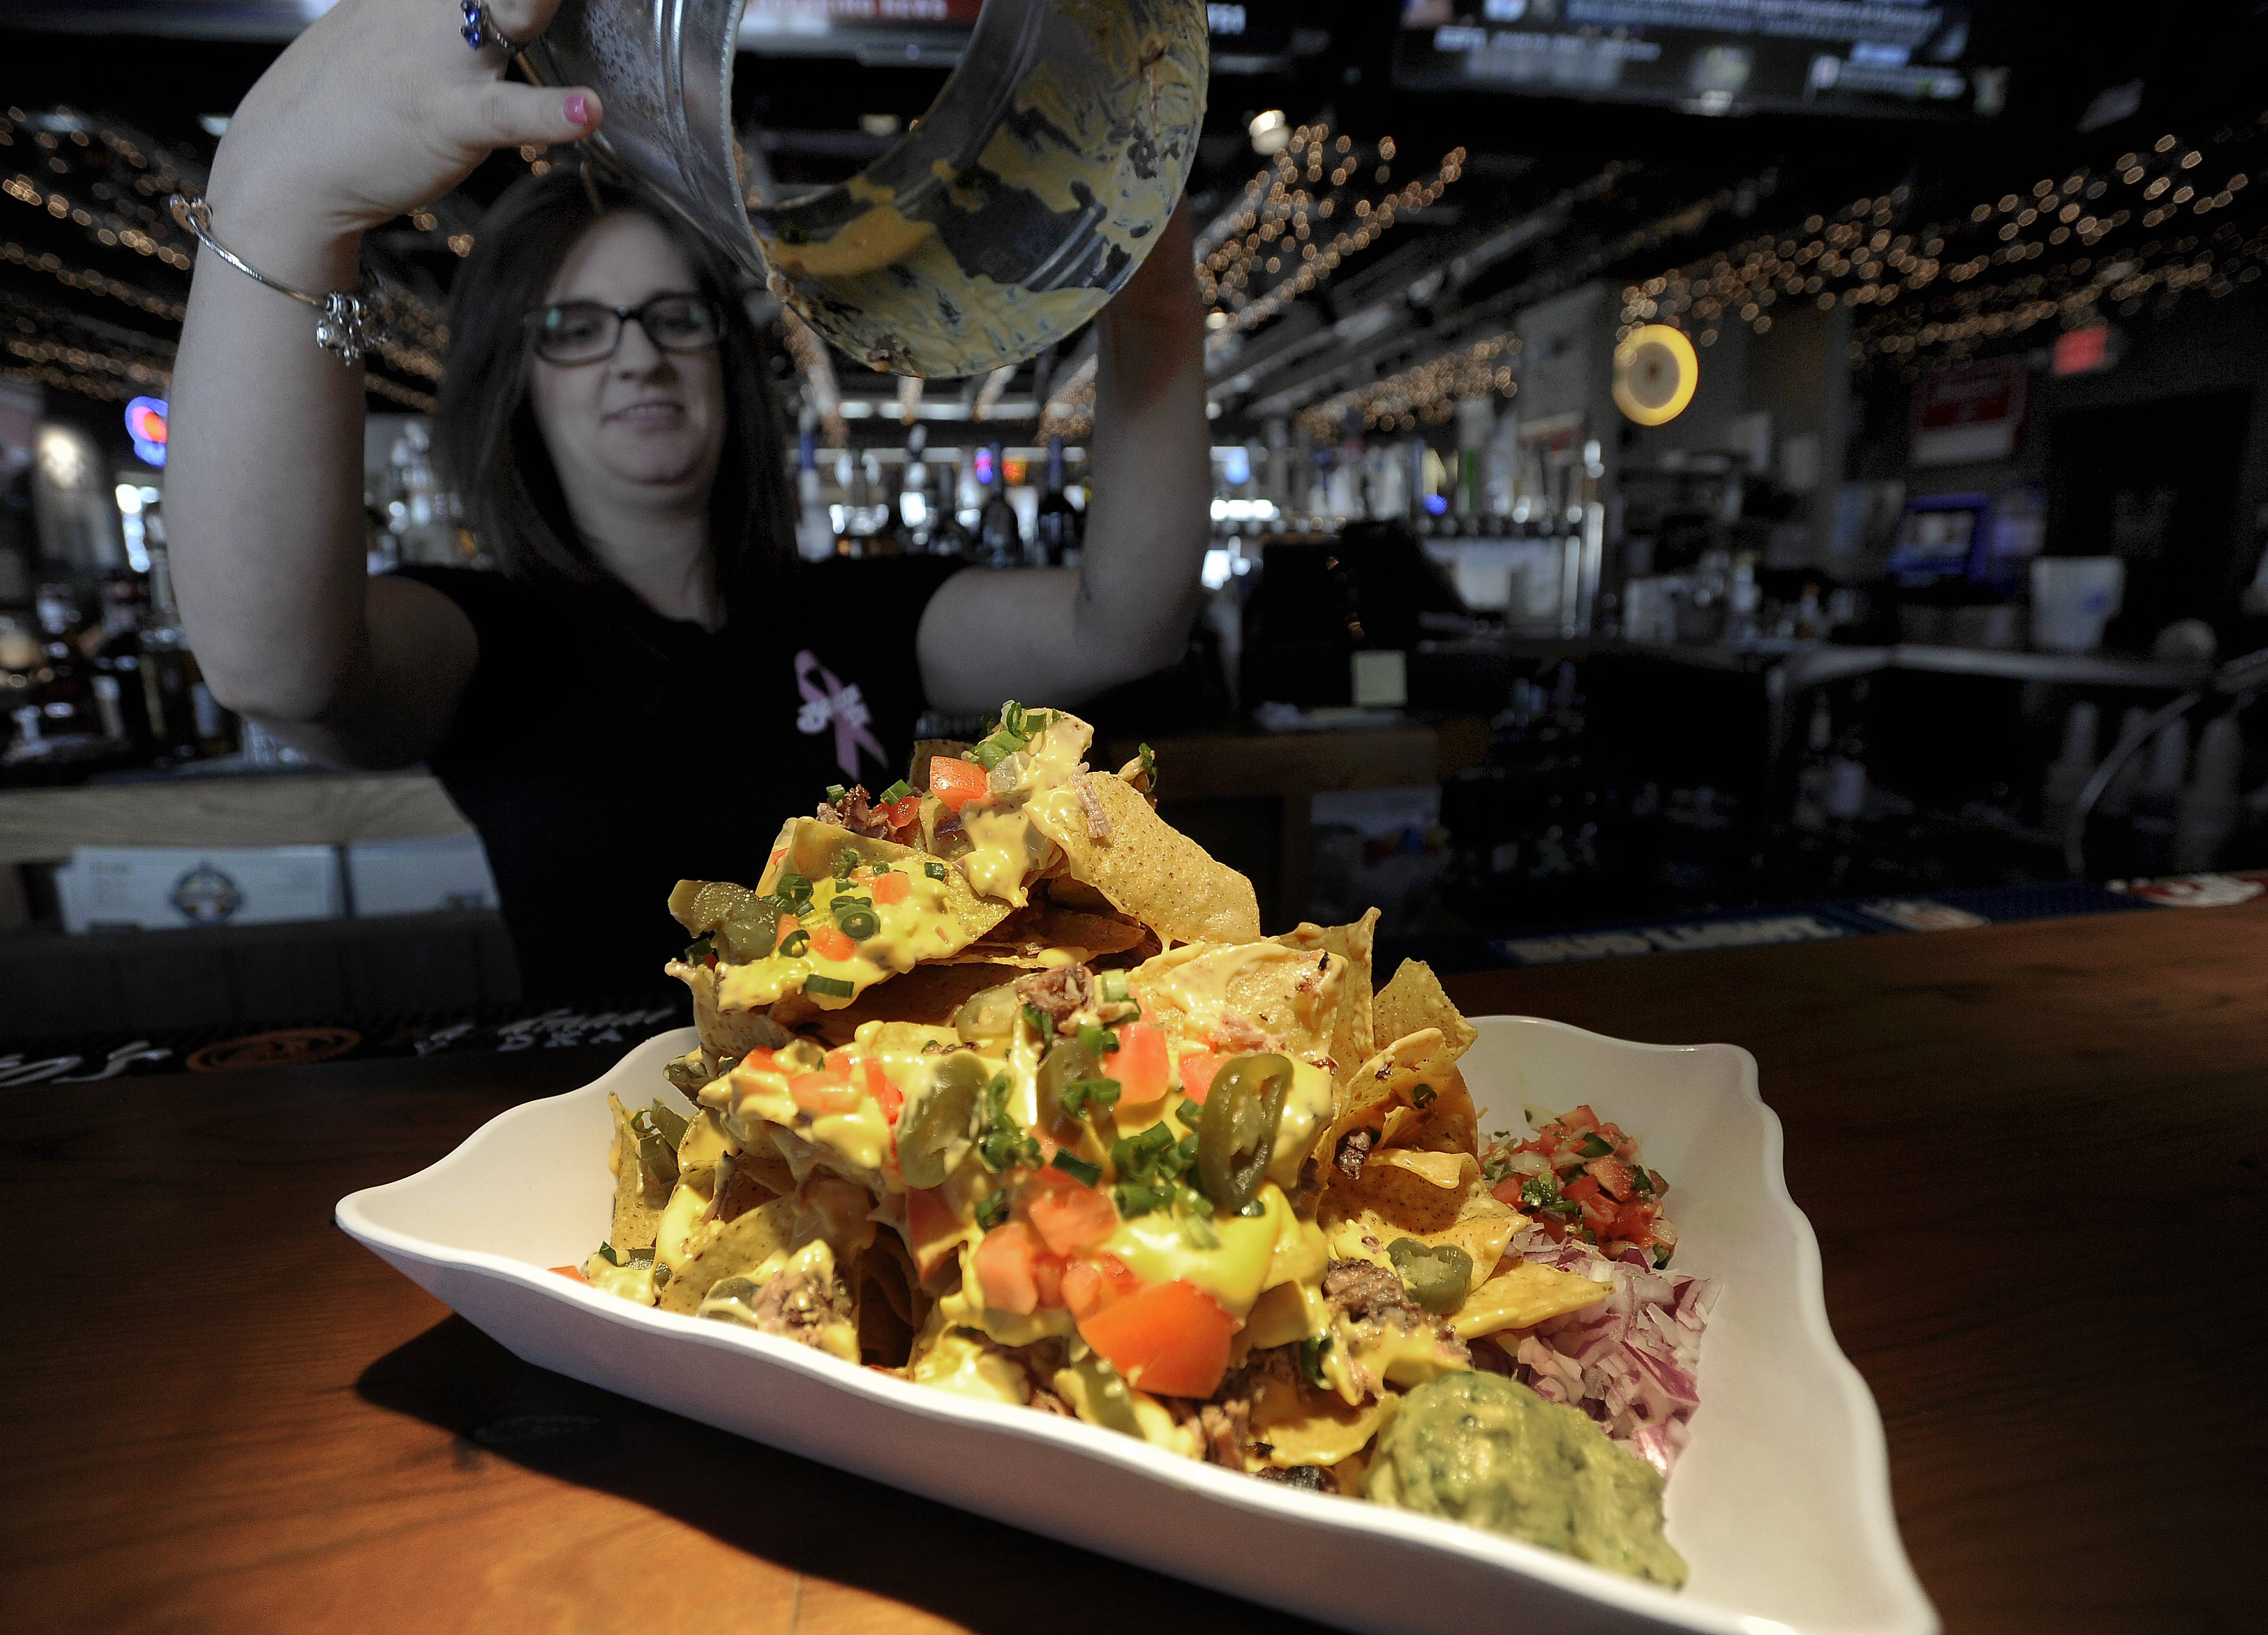 Beacon Tap bartender Breanna Weegens entertains the Tuesday afternoon lunch crowd as she lifts the trash can to reveal the Trash Can Nachos.